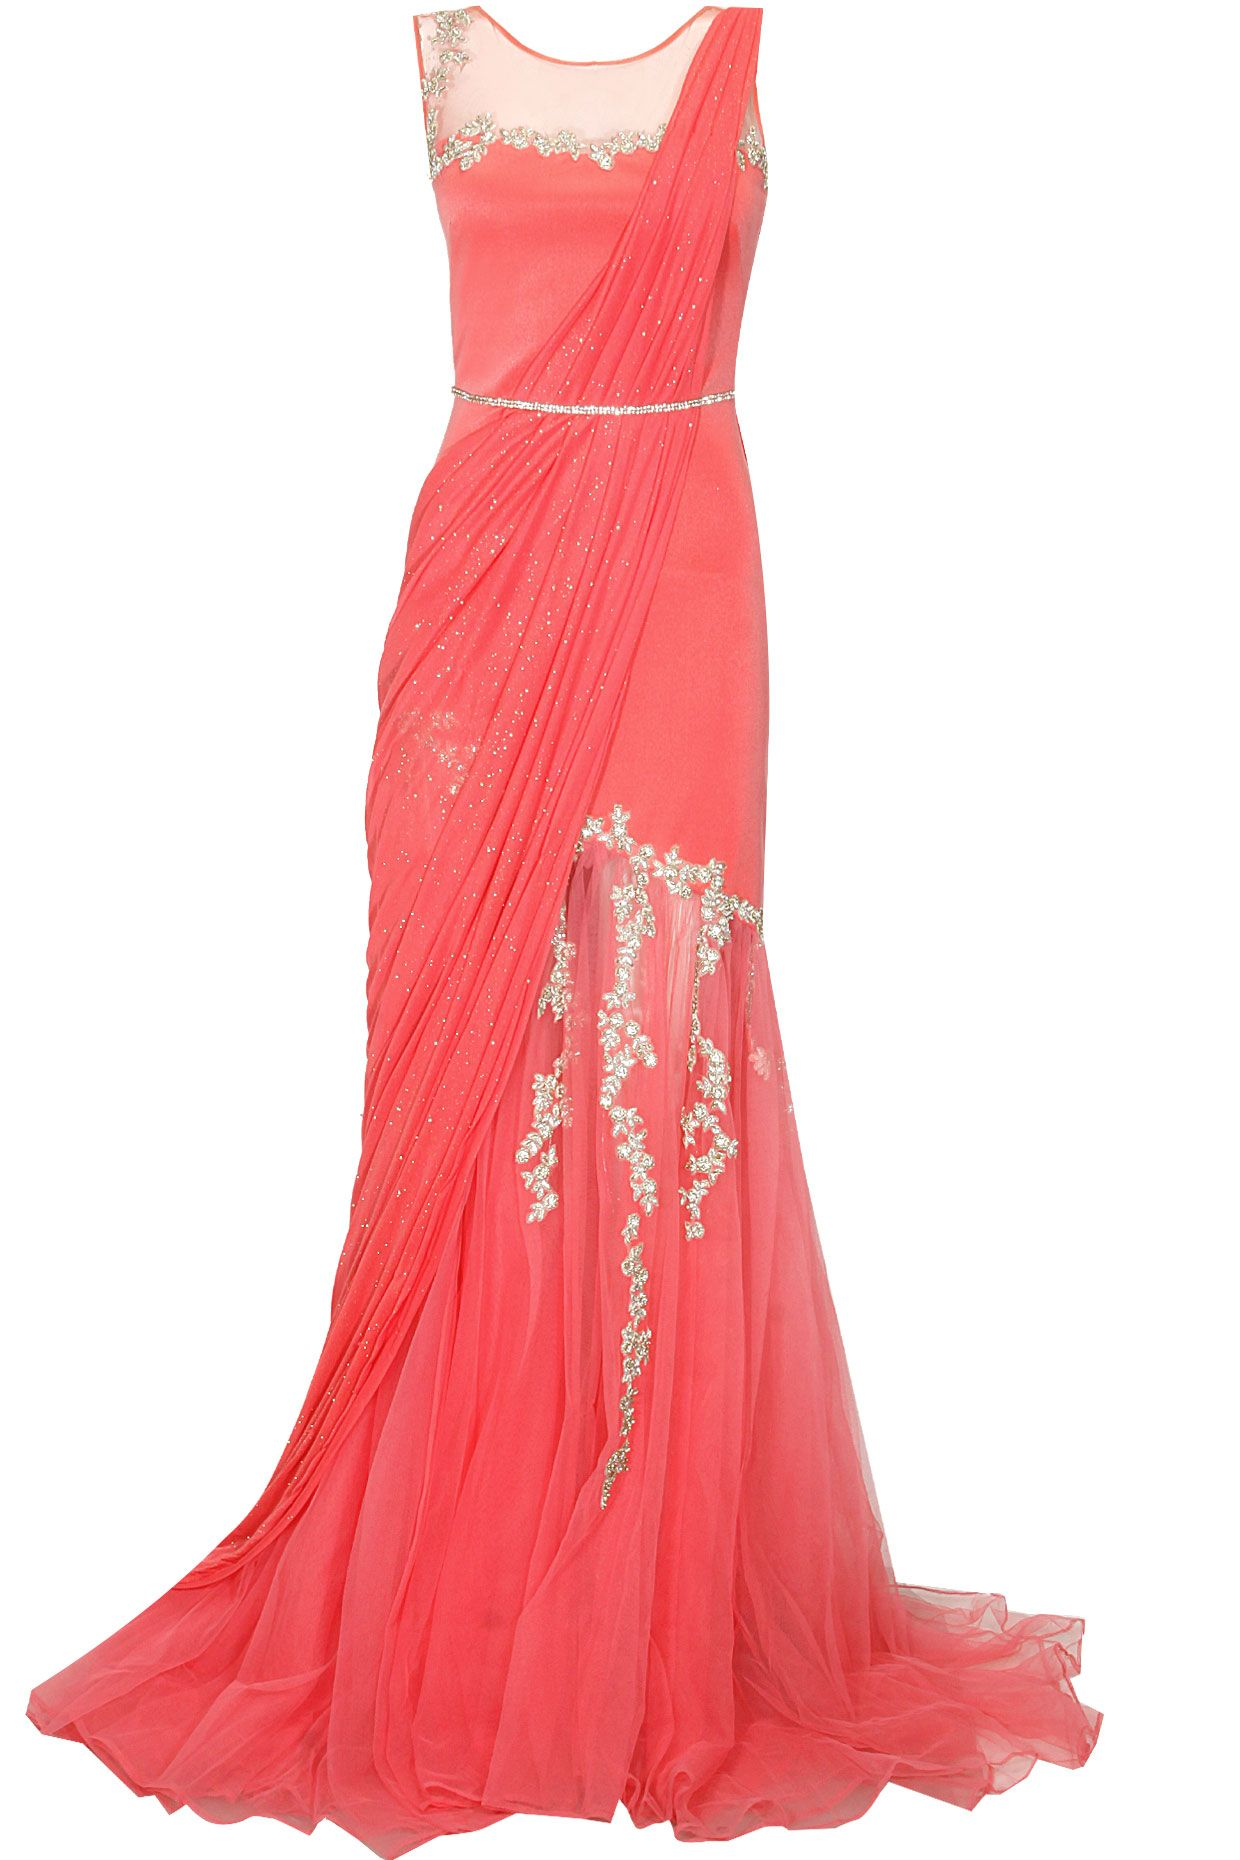 214279c846 Coral red embroidered pre draped saree gown available only at Pernia's Pop  Up Shop.